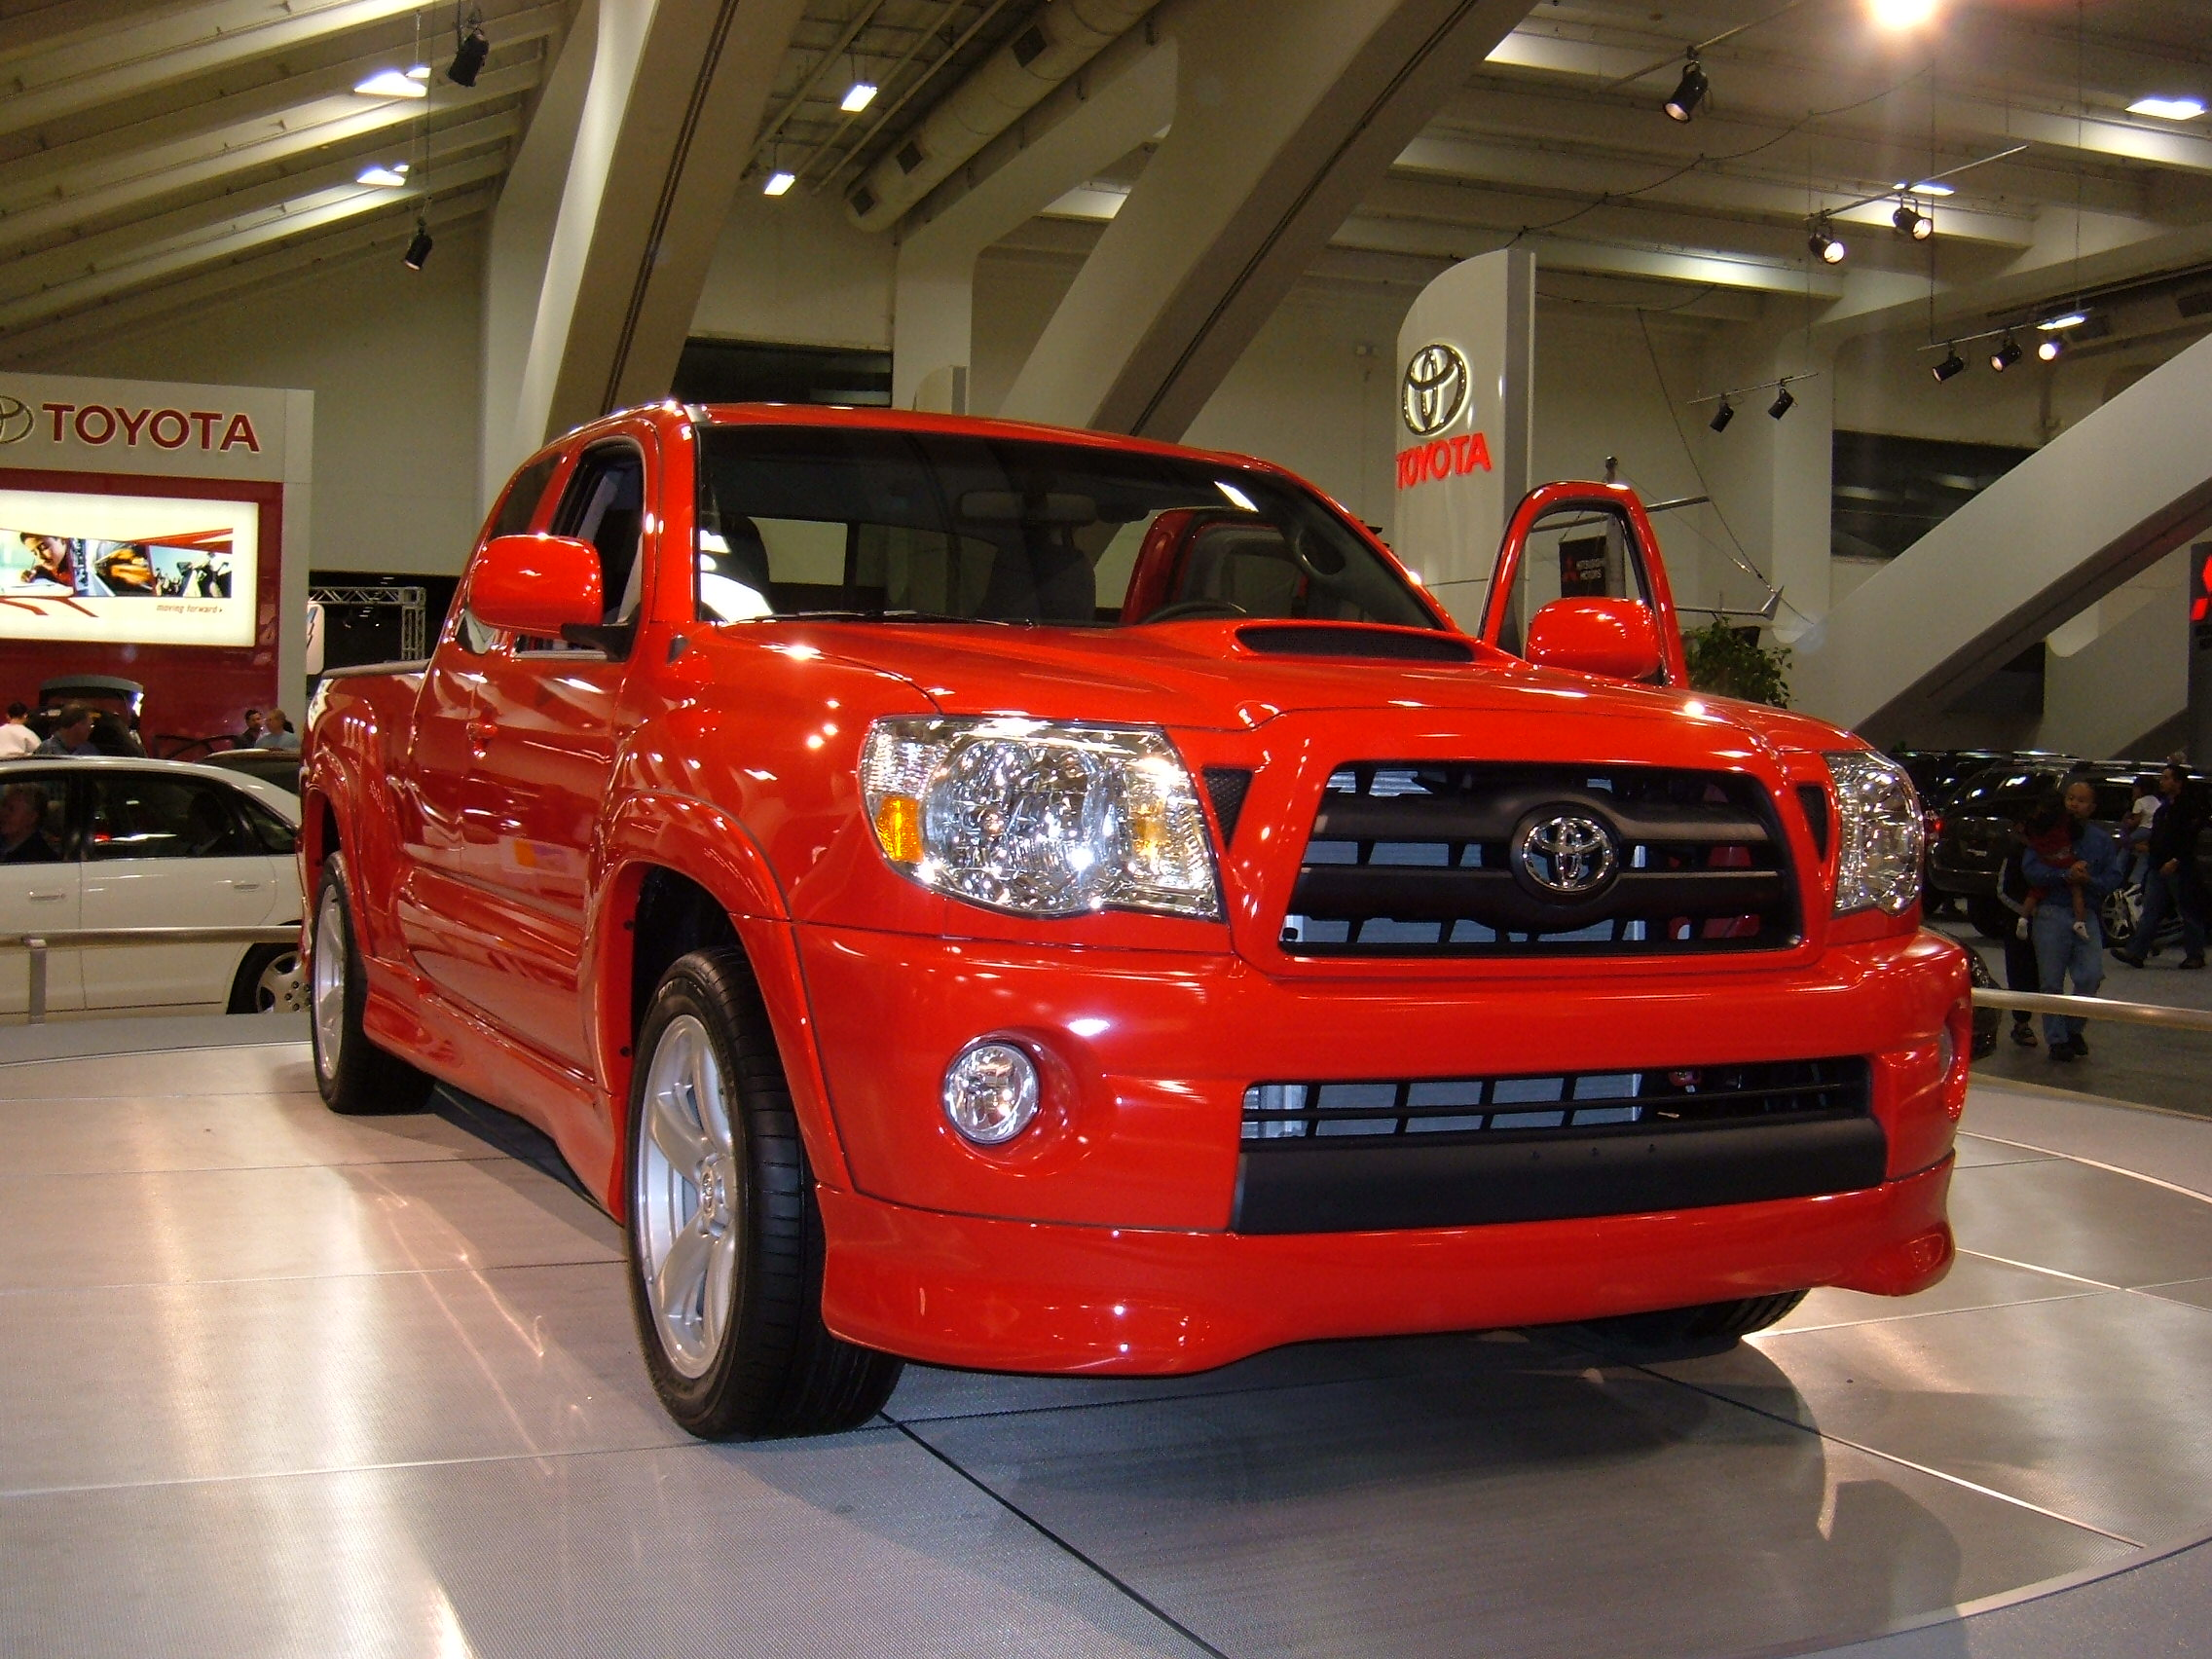 Description 2005 red Toyota Tacoma X-Runner.JPG